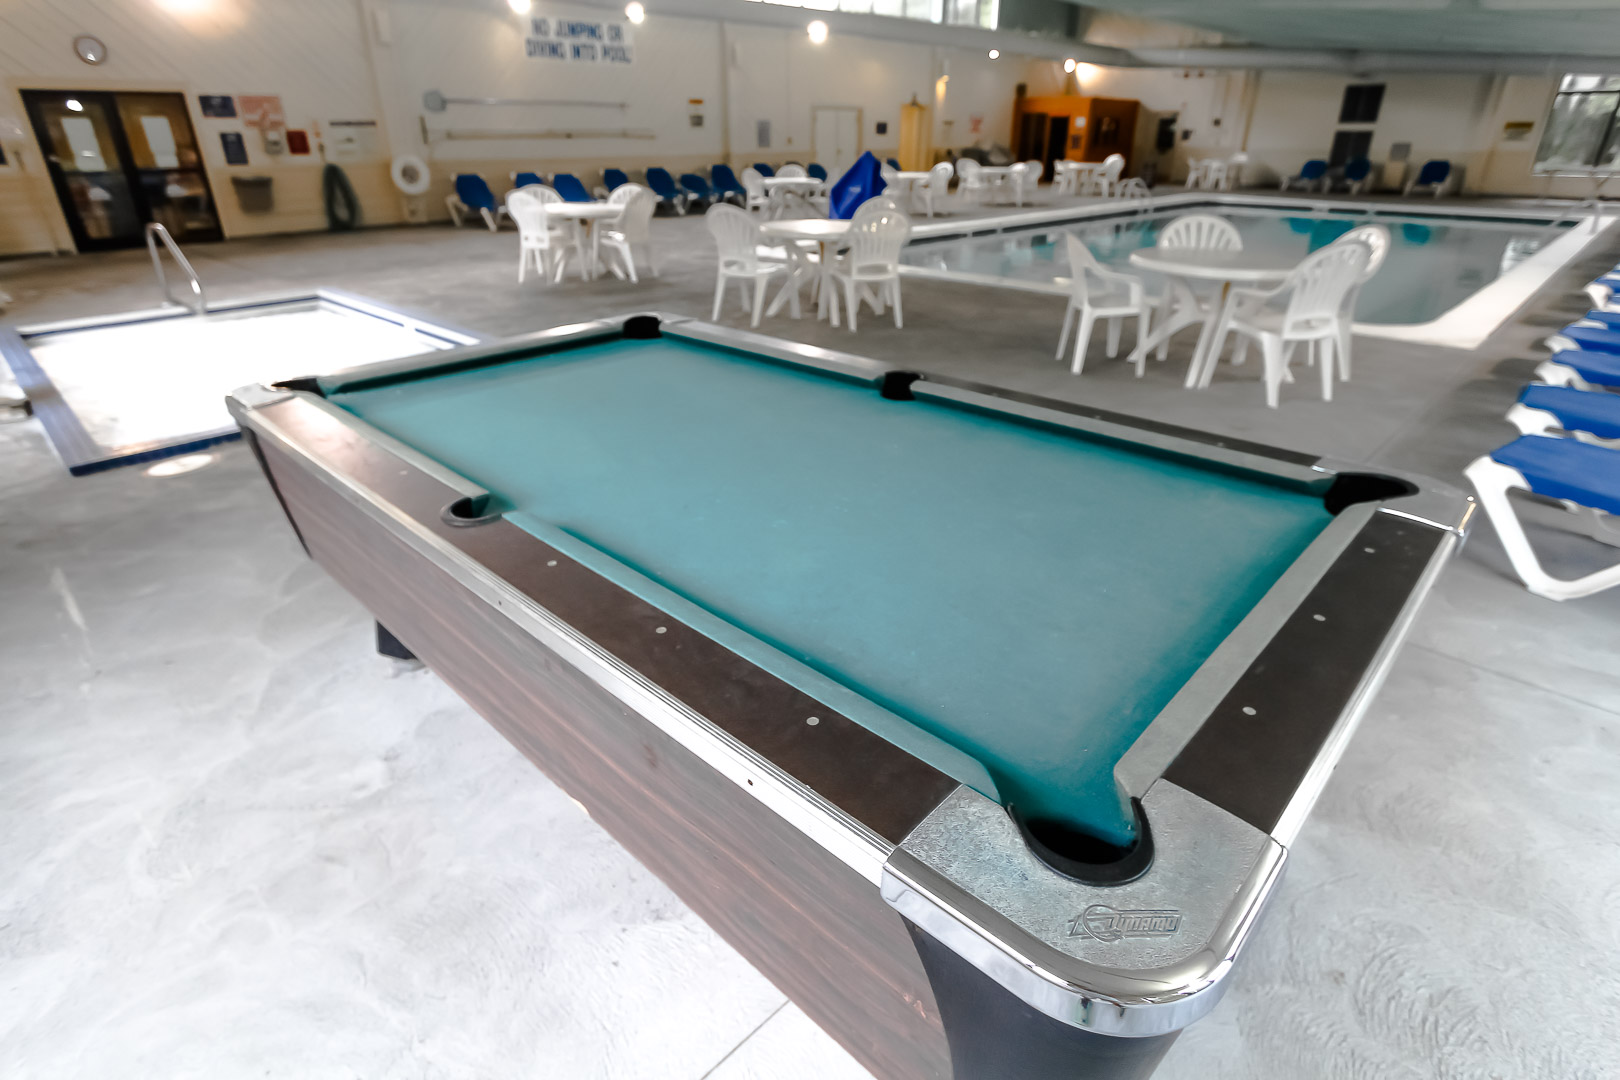 An indoor swimming pool with a pool table VRI's Sea Mist Resort in Massachusetts.